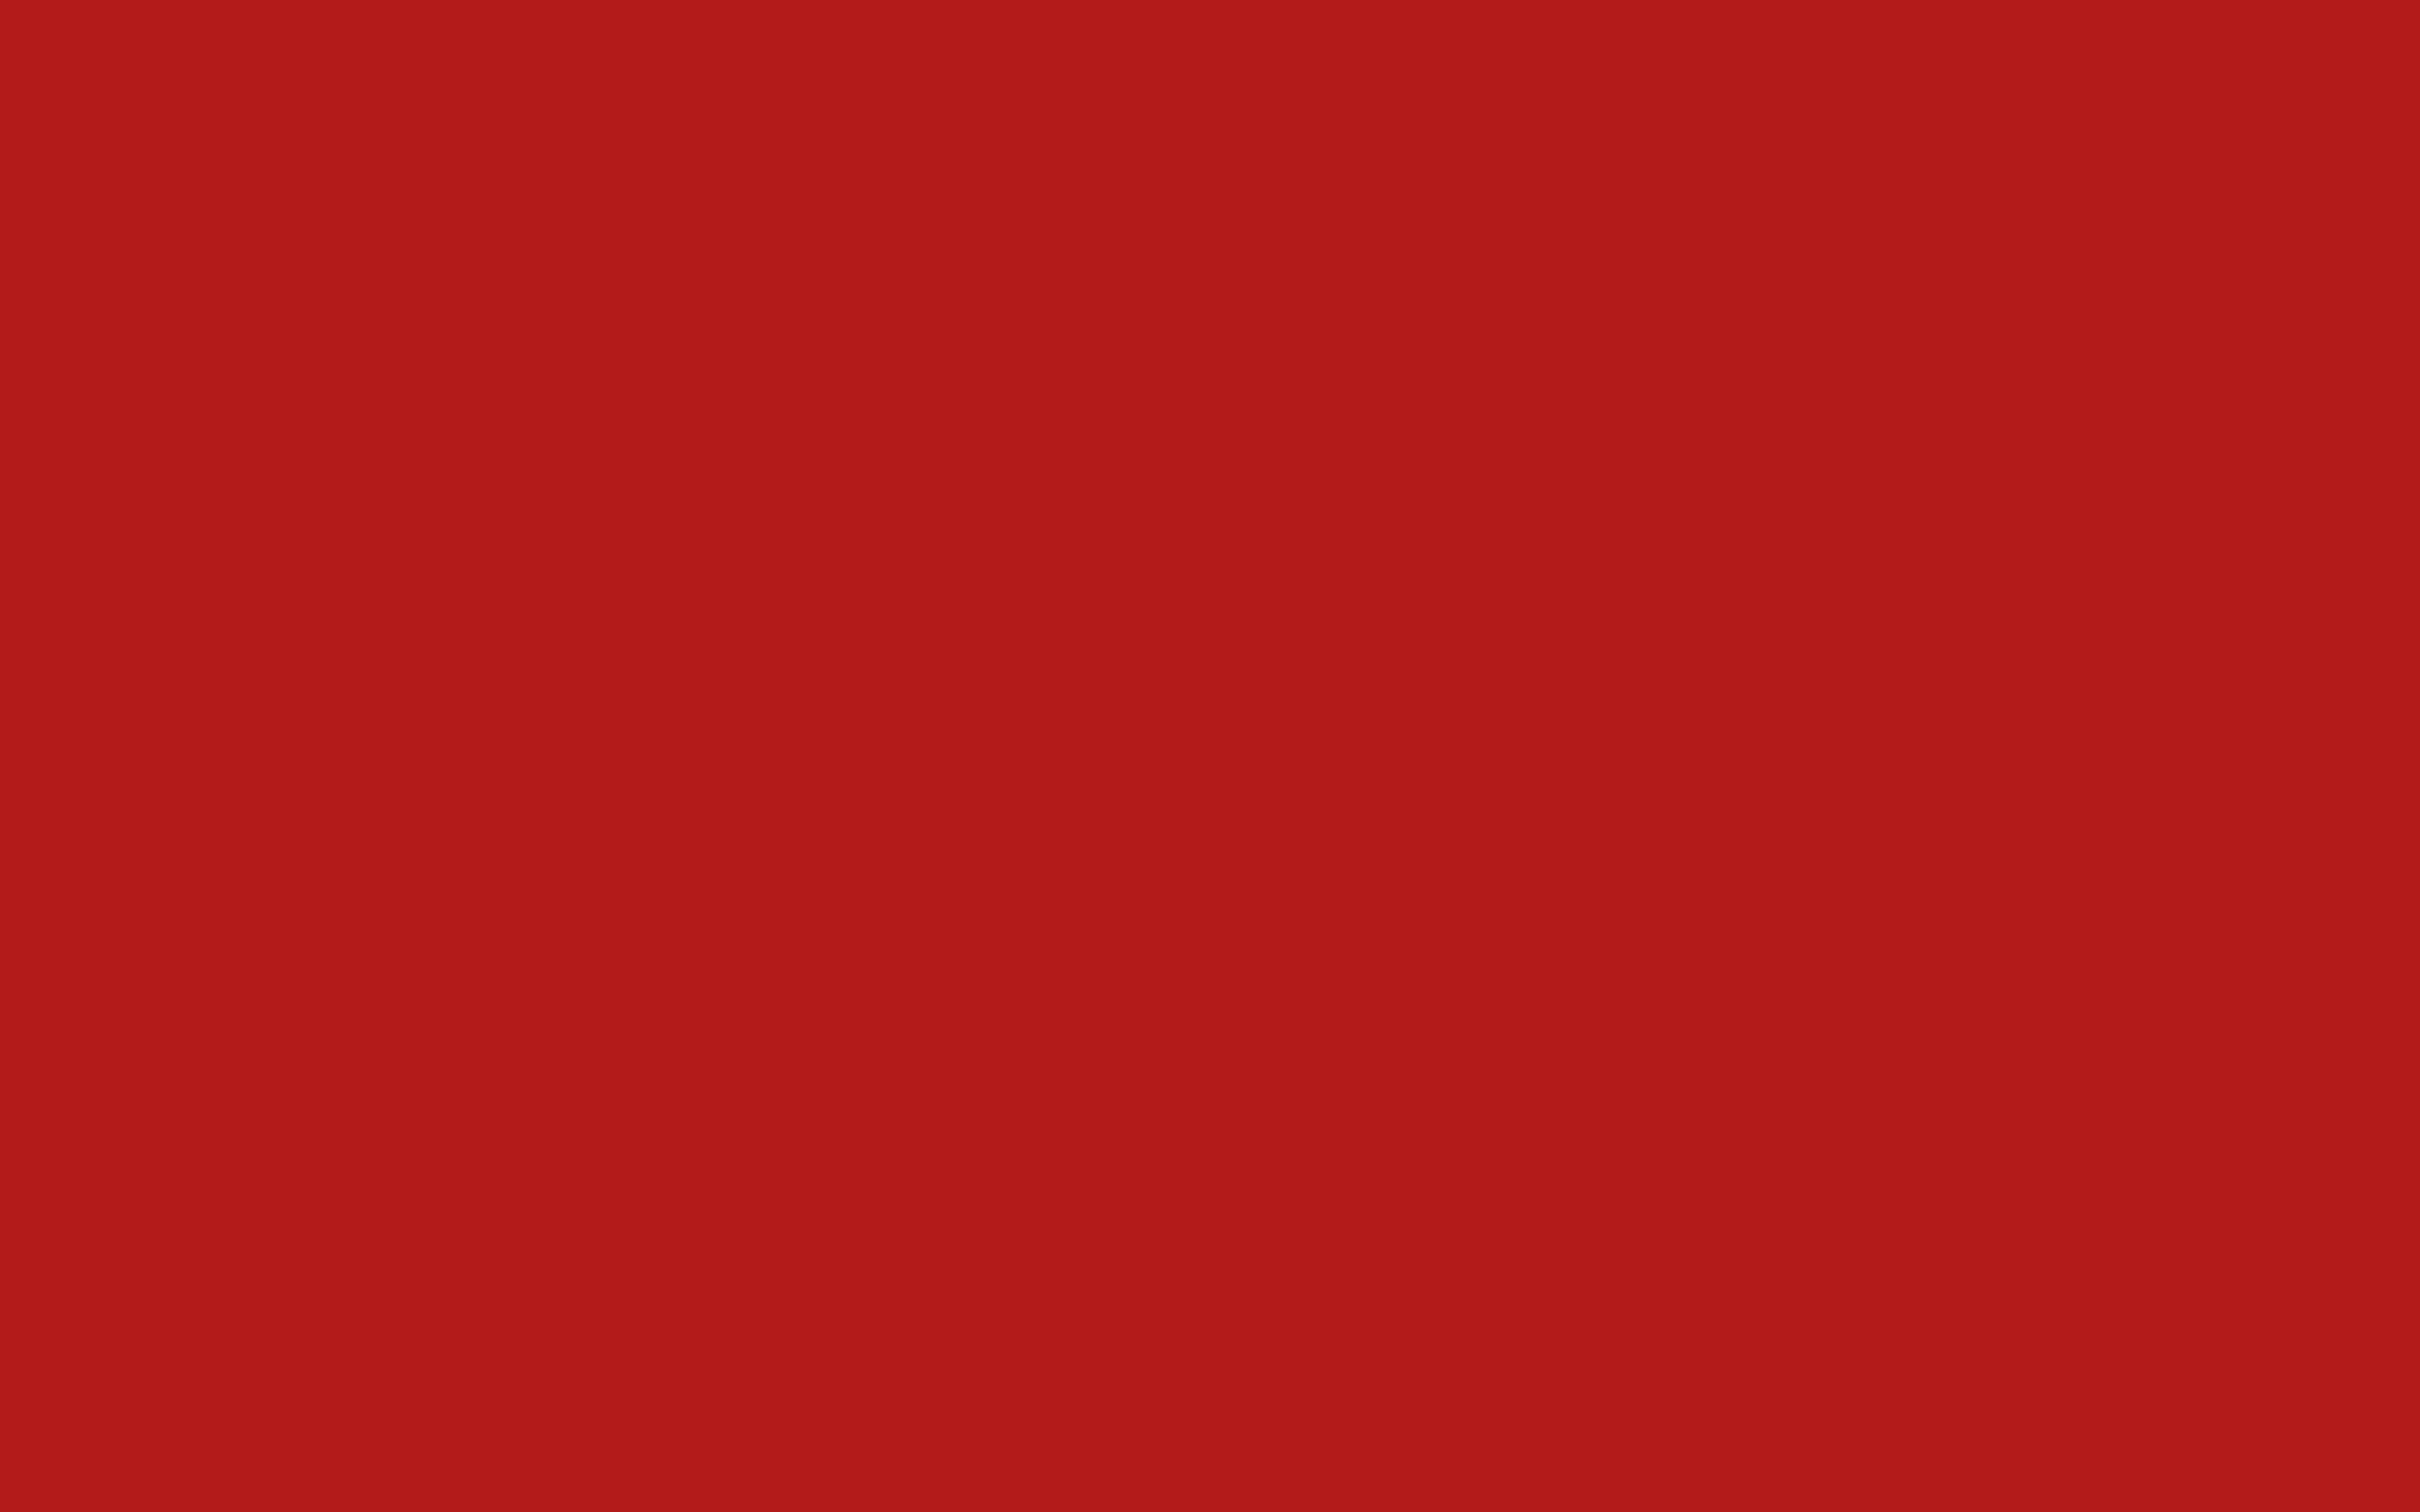 Red Color Wallpaper HD